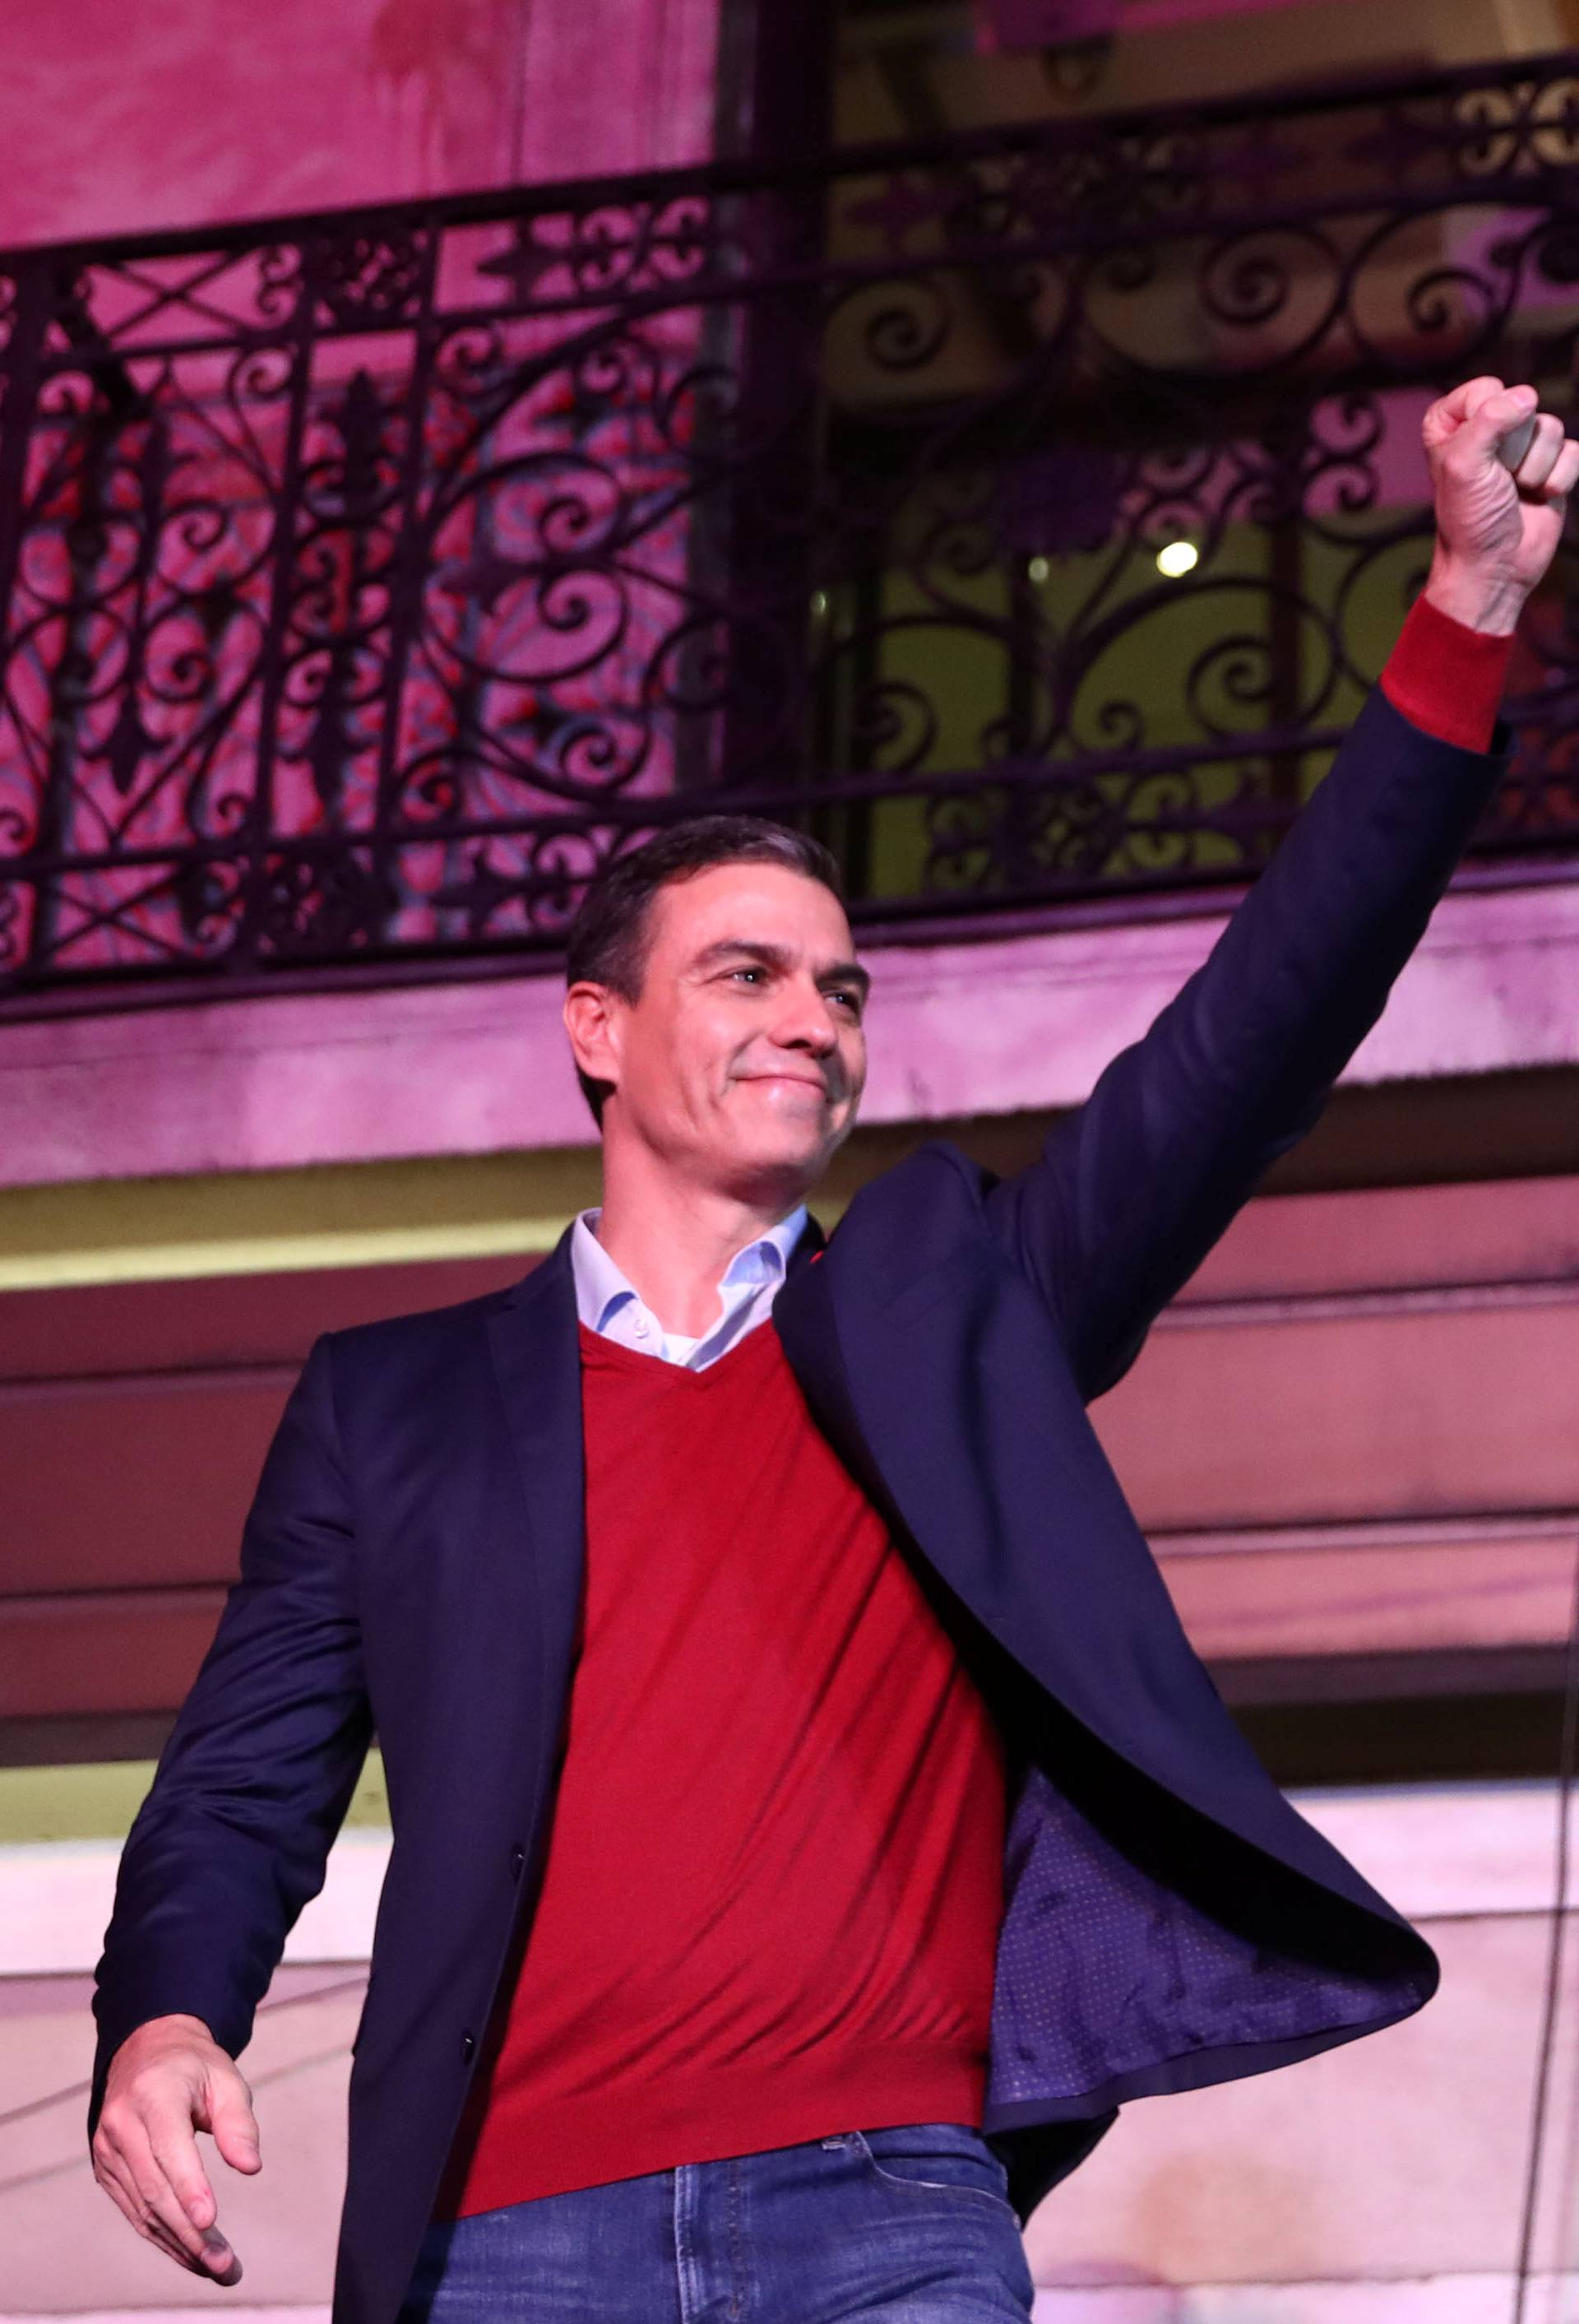 Spain's acting Prime Minister and Socialist Party leader (PSOE) candidate Pedro Sanchez speaks to supporters during Spain's general election at party headquarters in Madrid